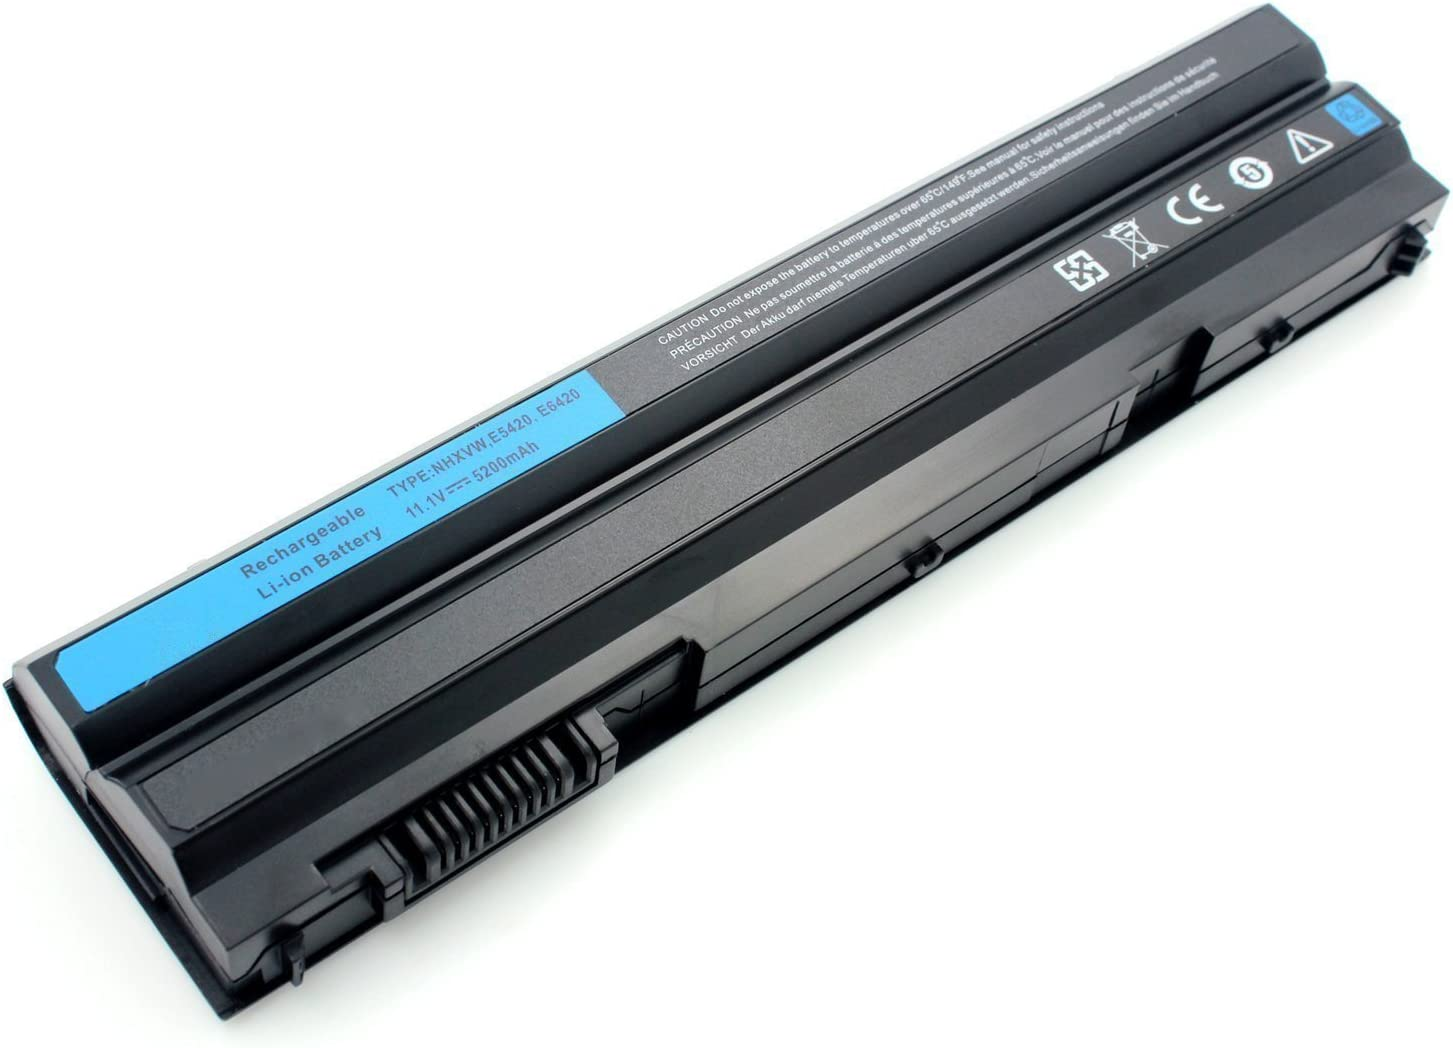 Alliboo Laptop Battery 60Wh 11.1V for Dell Latitude E6420 E6430 E6520 E6530 E5420 E5520 E5430 E5530 4YRJH 8858X KJ321 M5Y0X P8TC7 P9TJ0 R48V3 RU485 T54F3 T54FJ